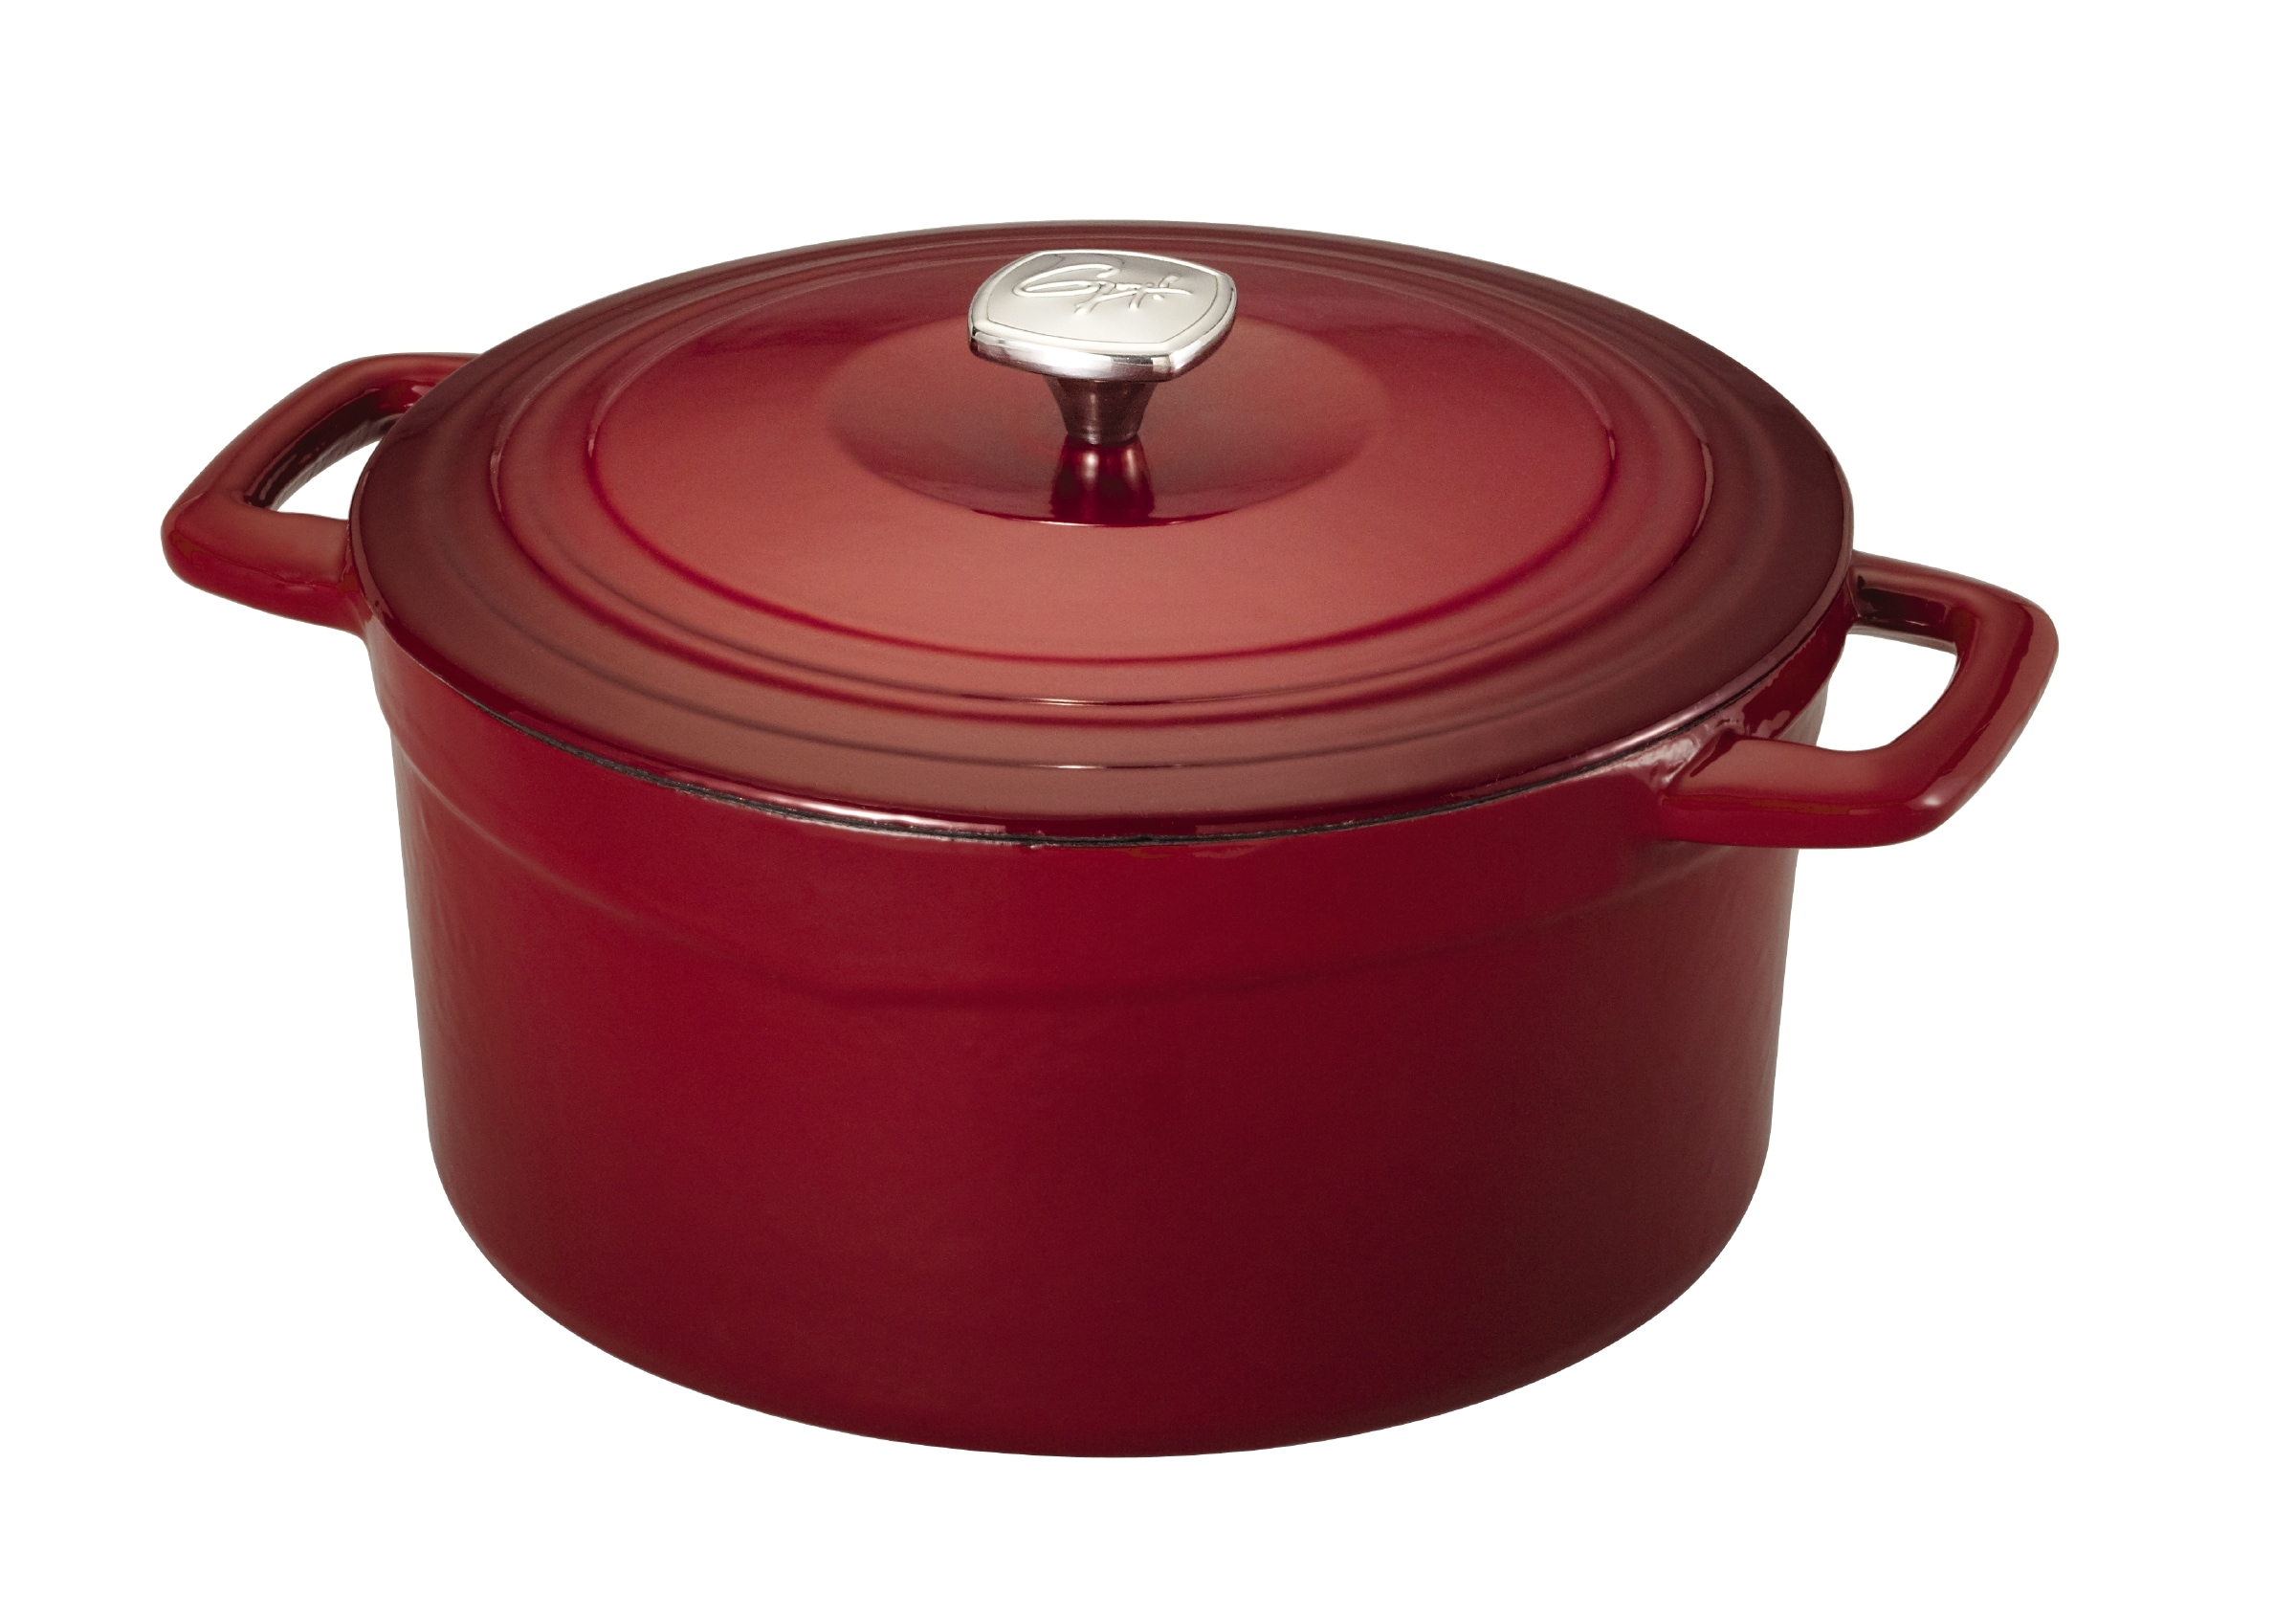 tramontina dutch oven care instructions